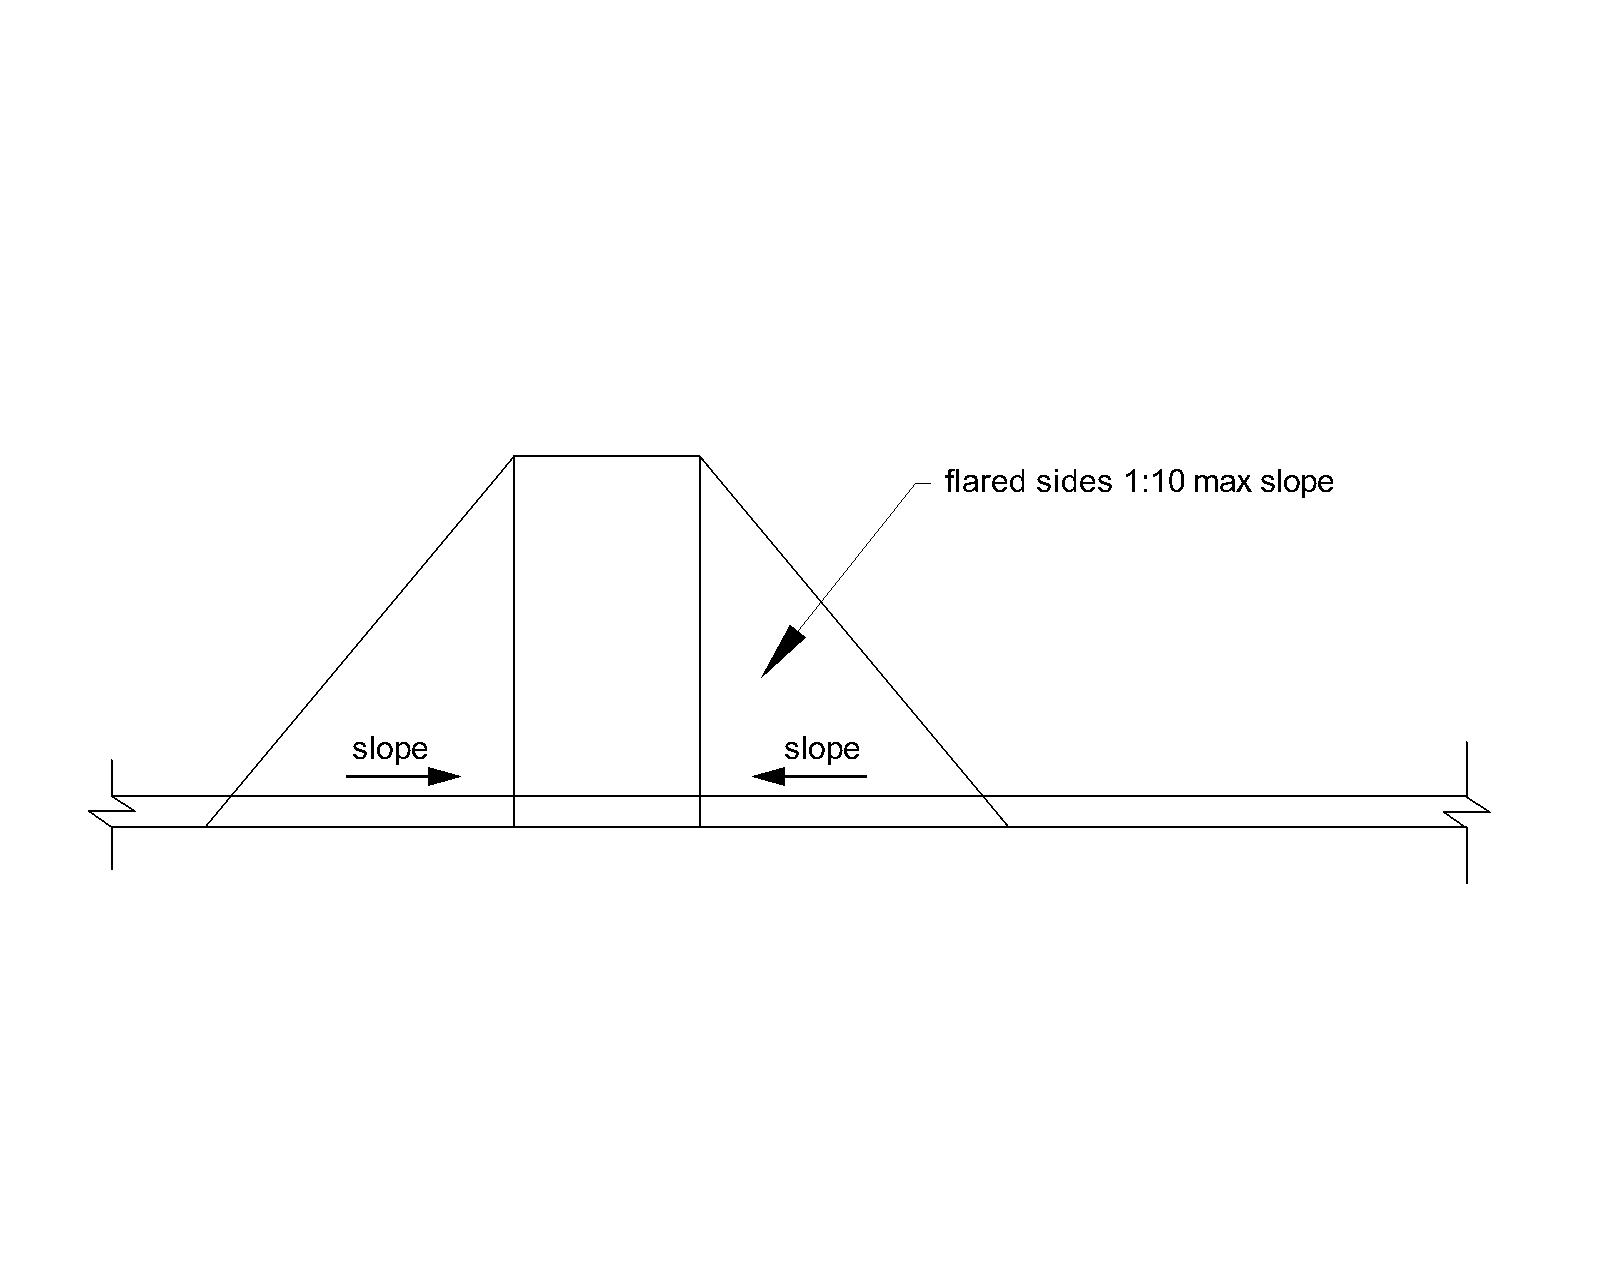 A curb ramp with triangular flared sides is shown. The flared sides have a maximum 1:10 slope, measured at the curb face.